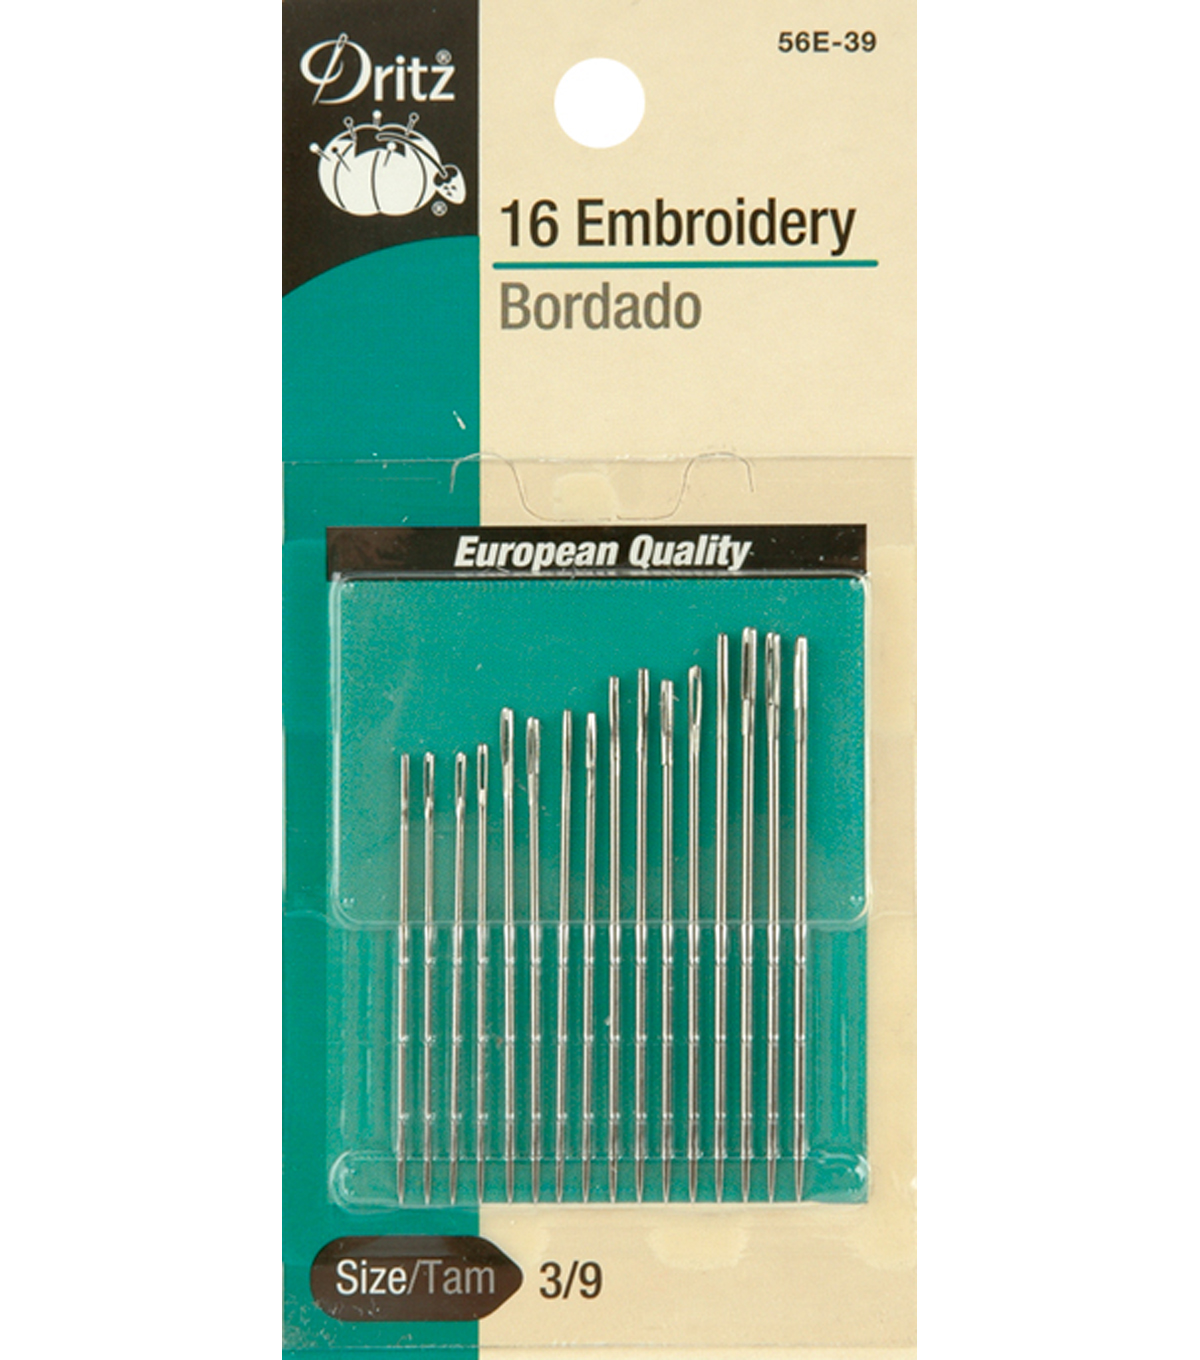 Dritz Embroidery Hand Needles